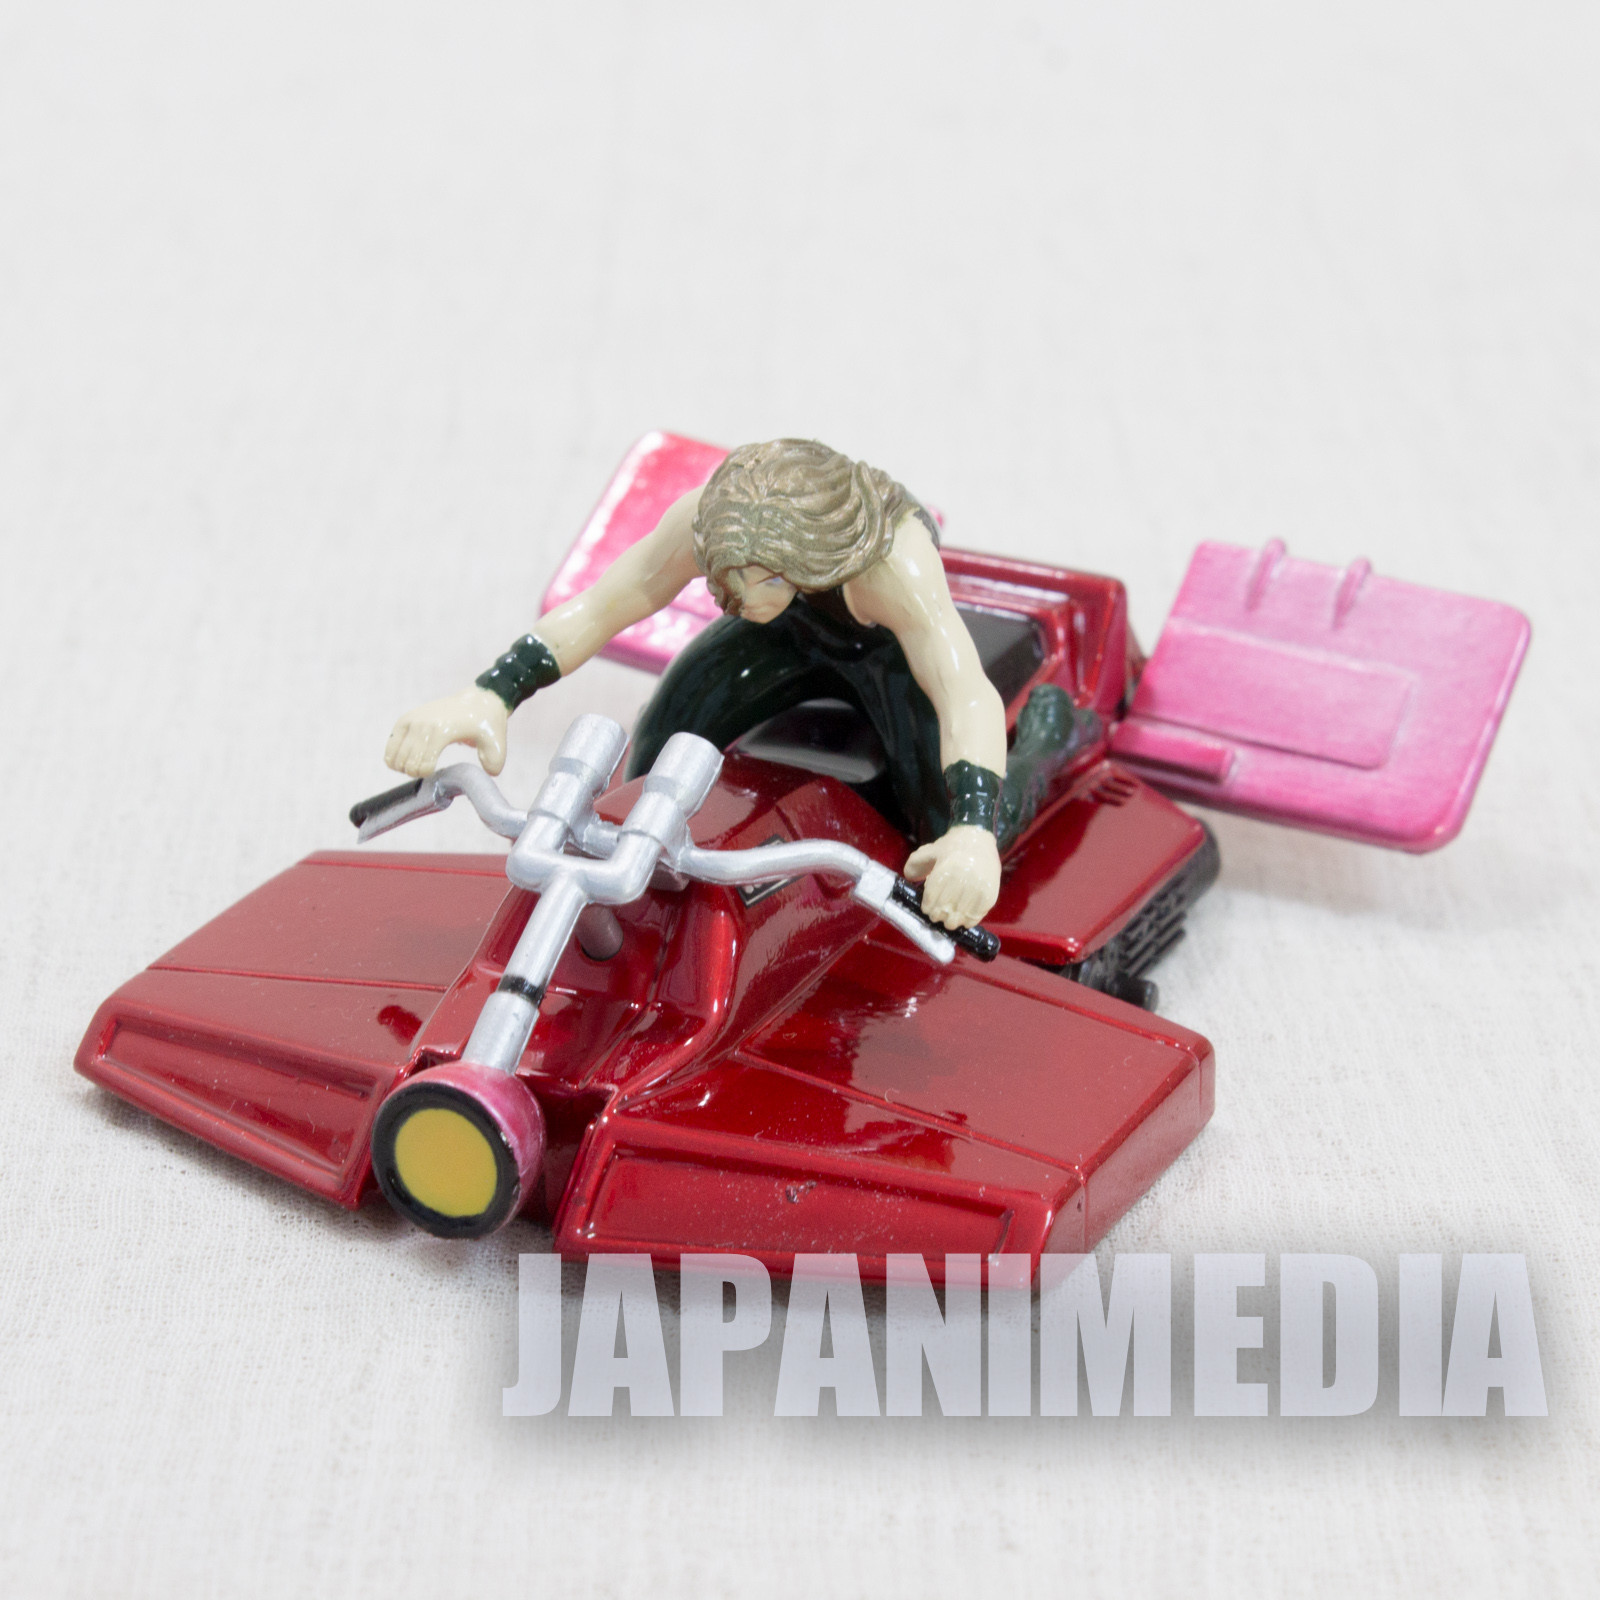 Space Adventure Cobra COBRA Non Orthopedic Cosmo Bike Figure